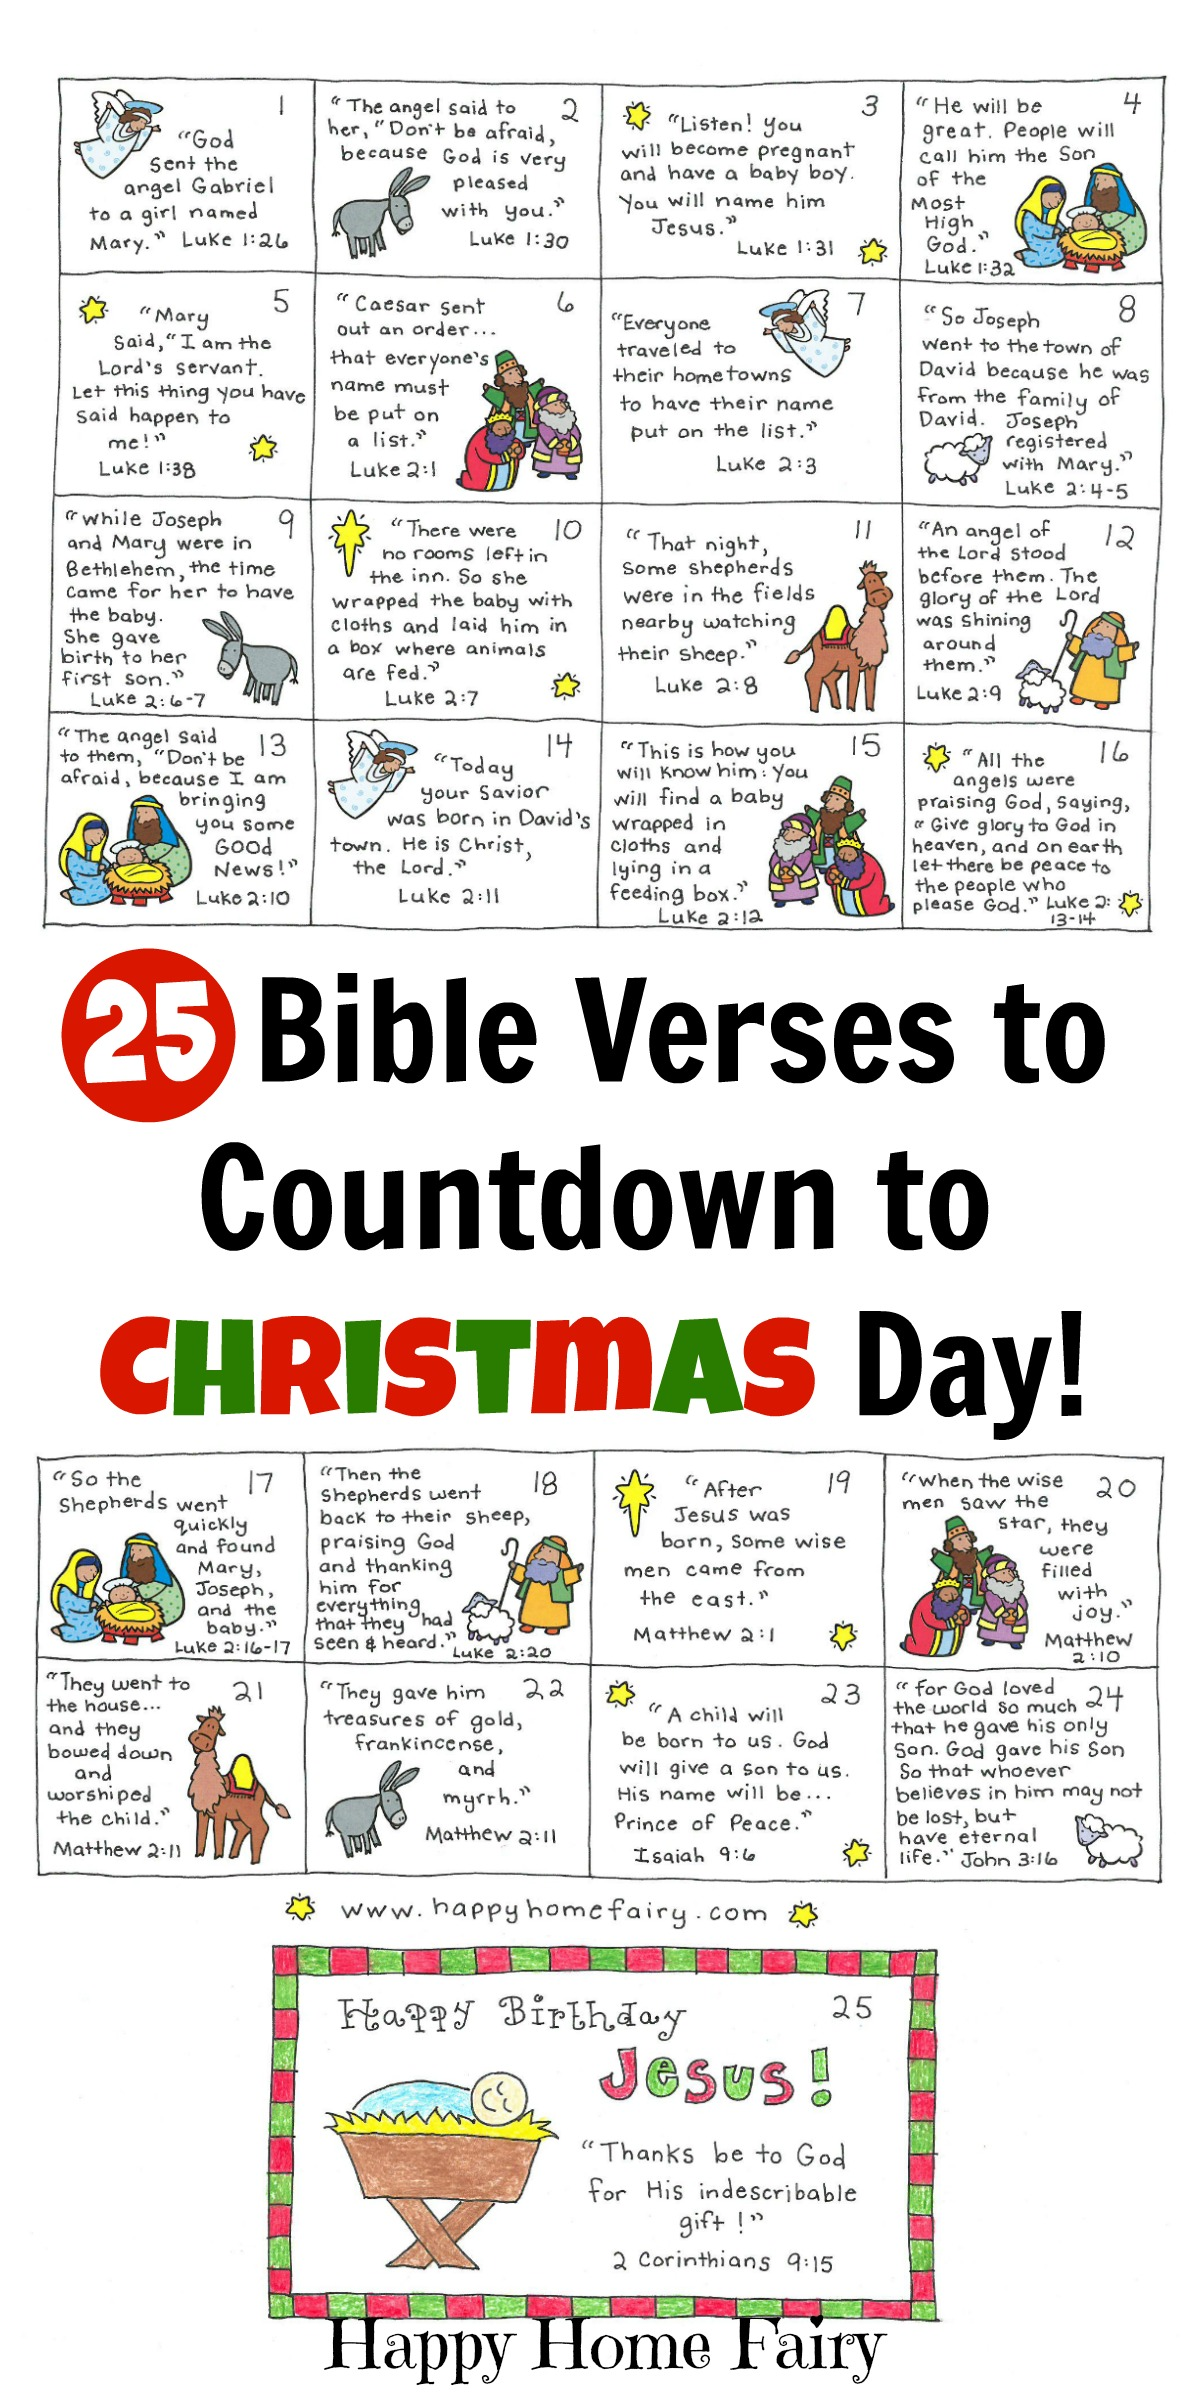 photograph regarding Free Printable Bible Verses named Bible Verse Introduction Countdown for Children - Cost-free Printable